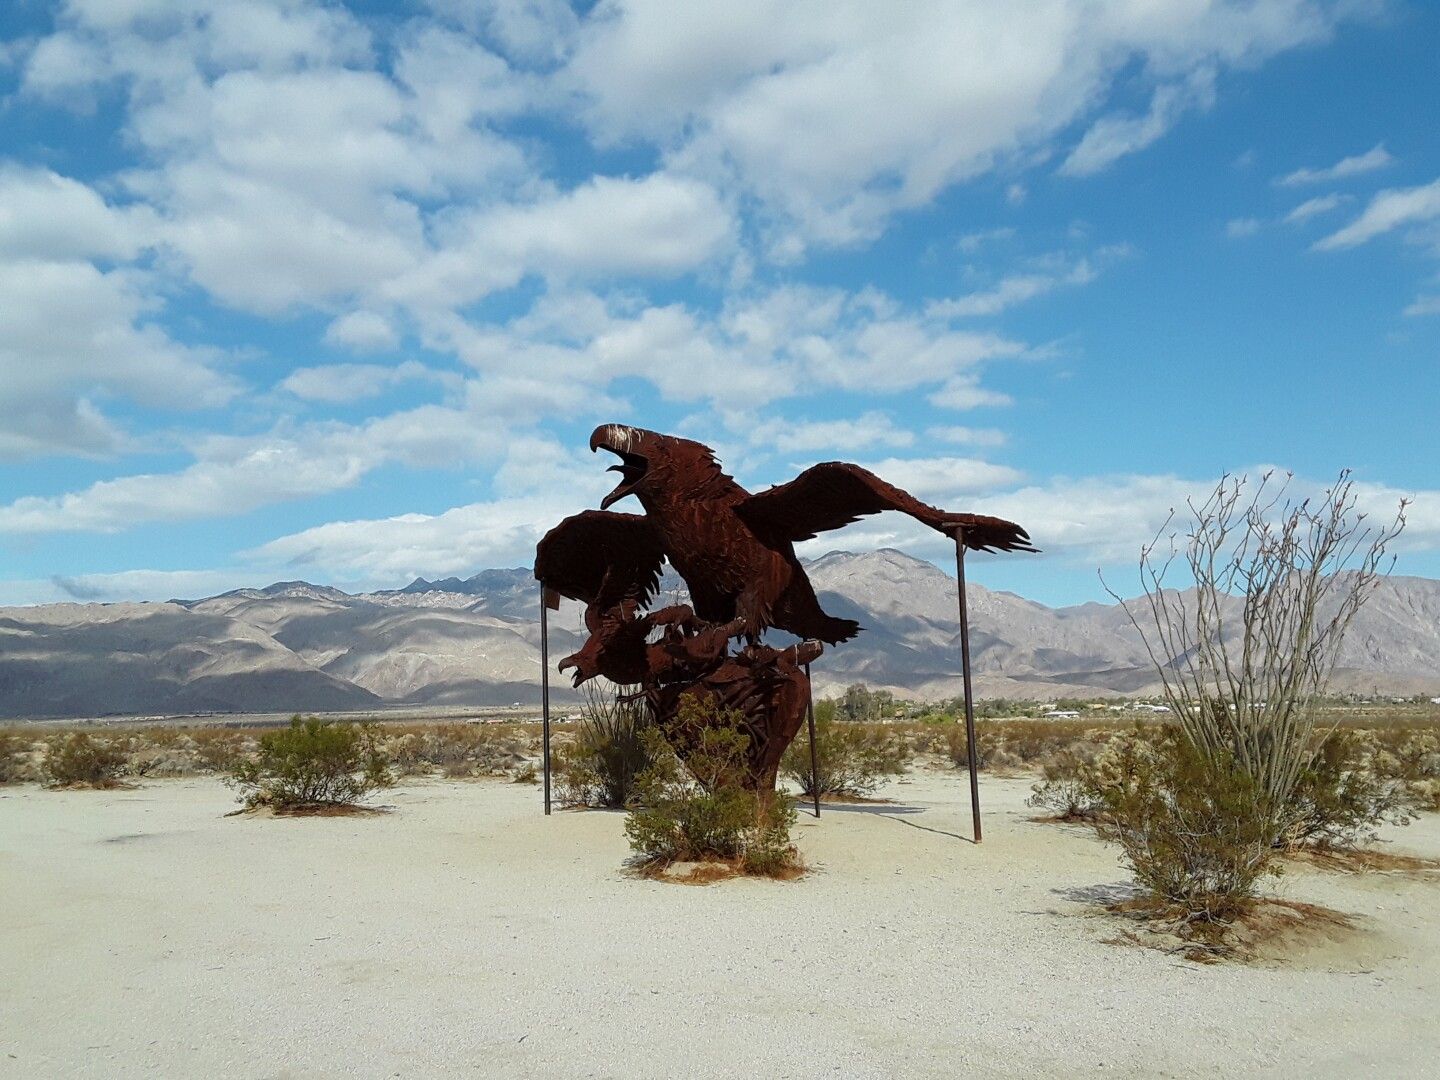 A rust-colored metal bird sculpture stands in the middle of a desert landscape. The bird's wings are outstretched and its mouth is open.